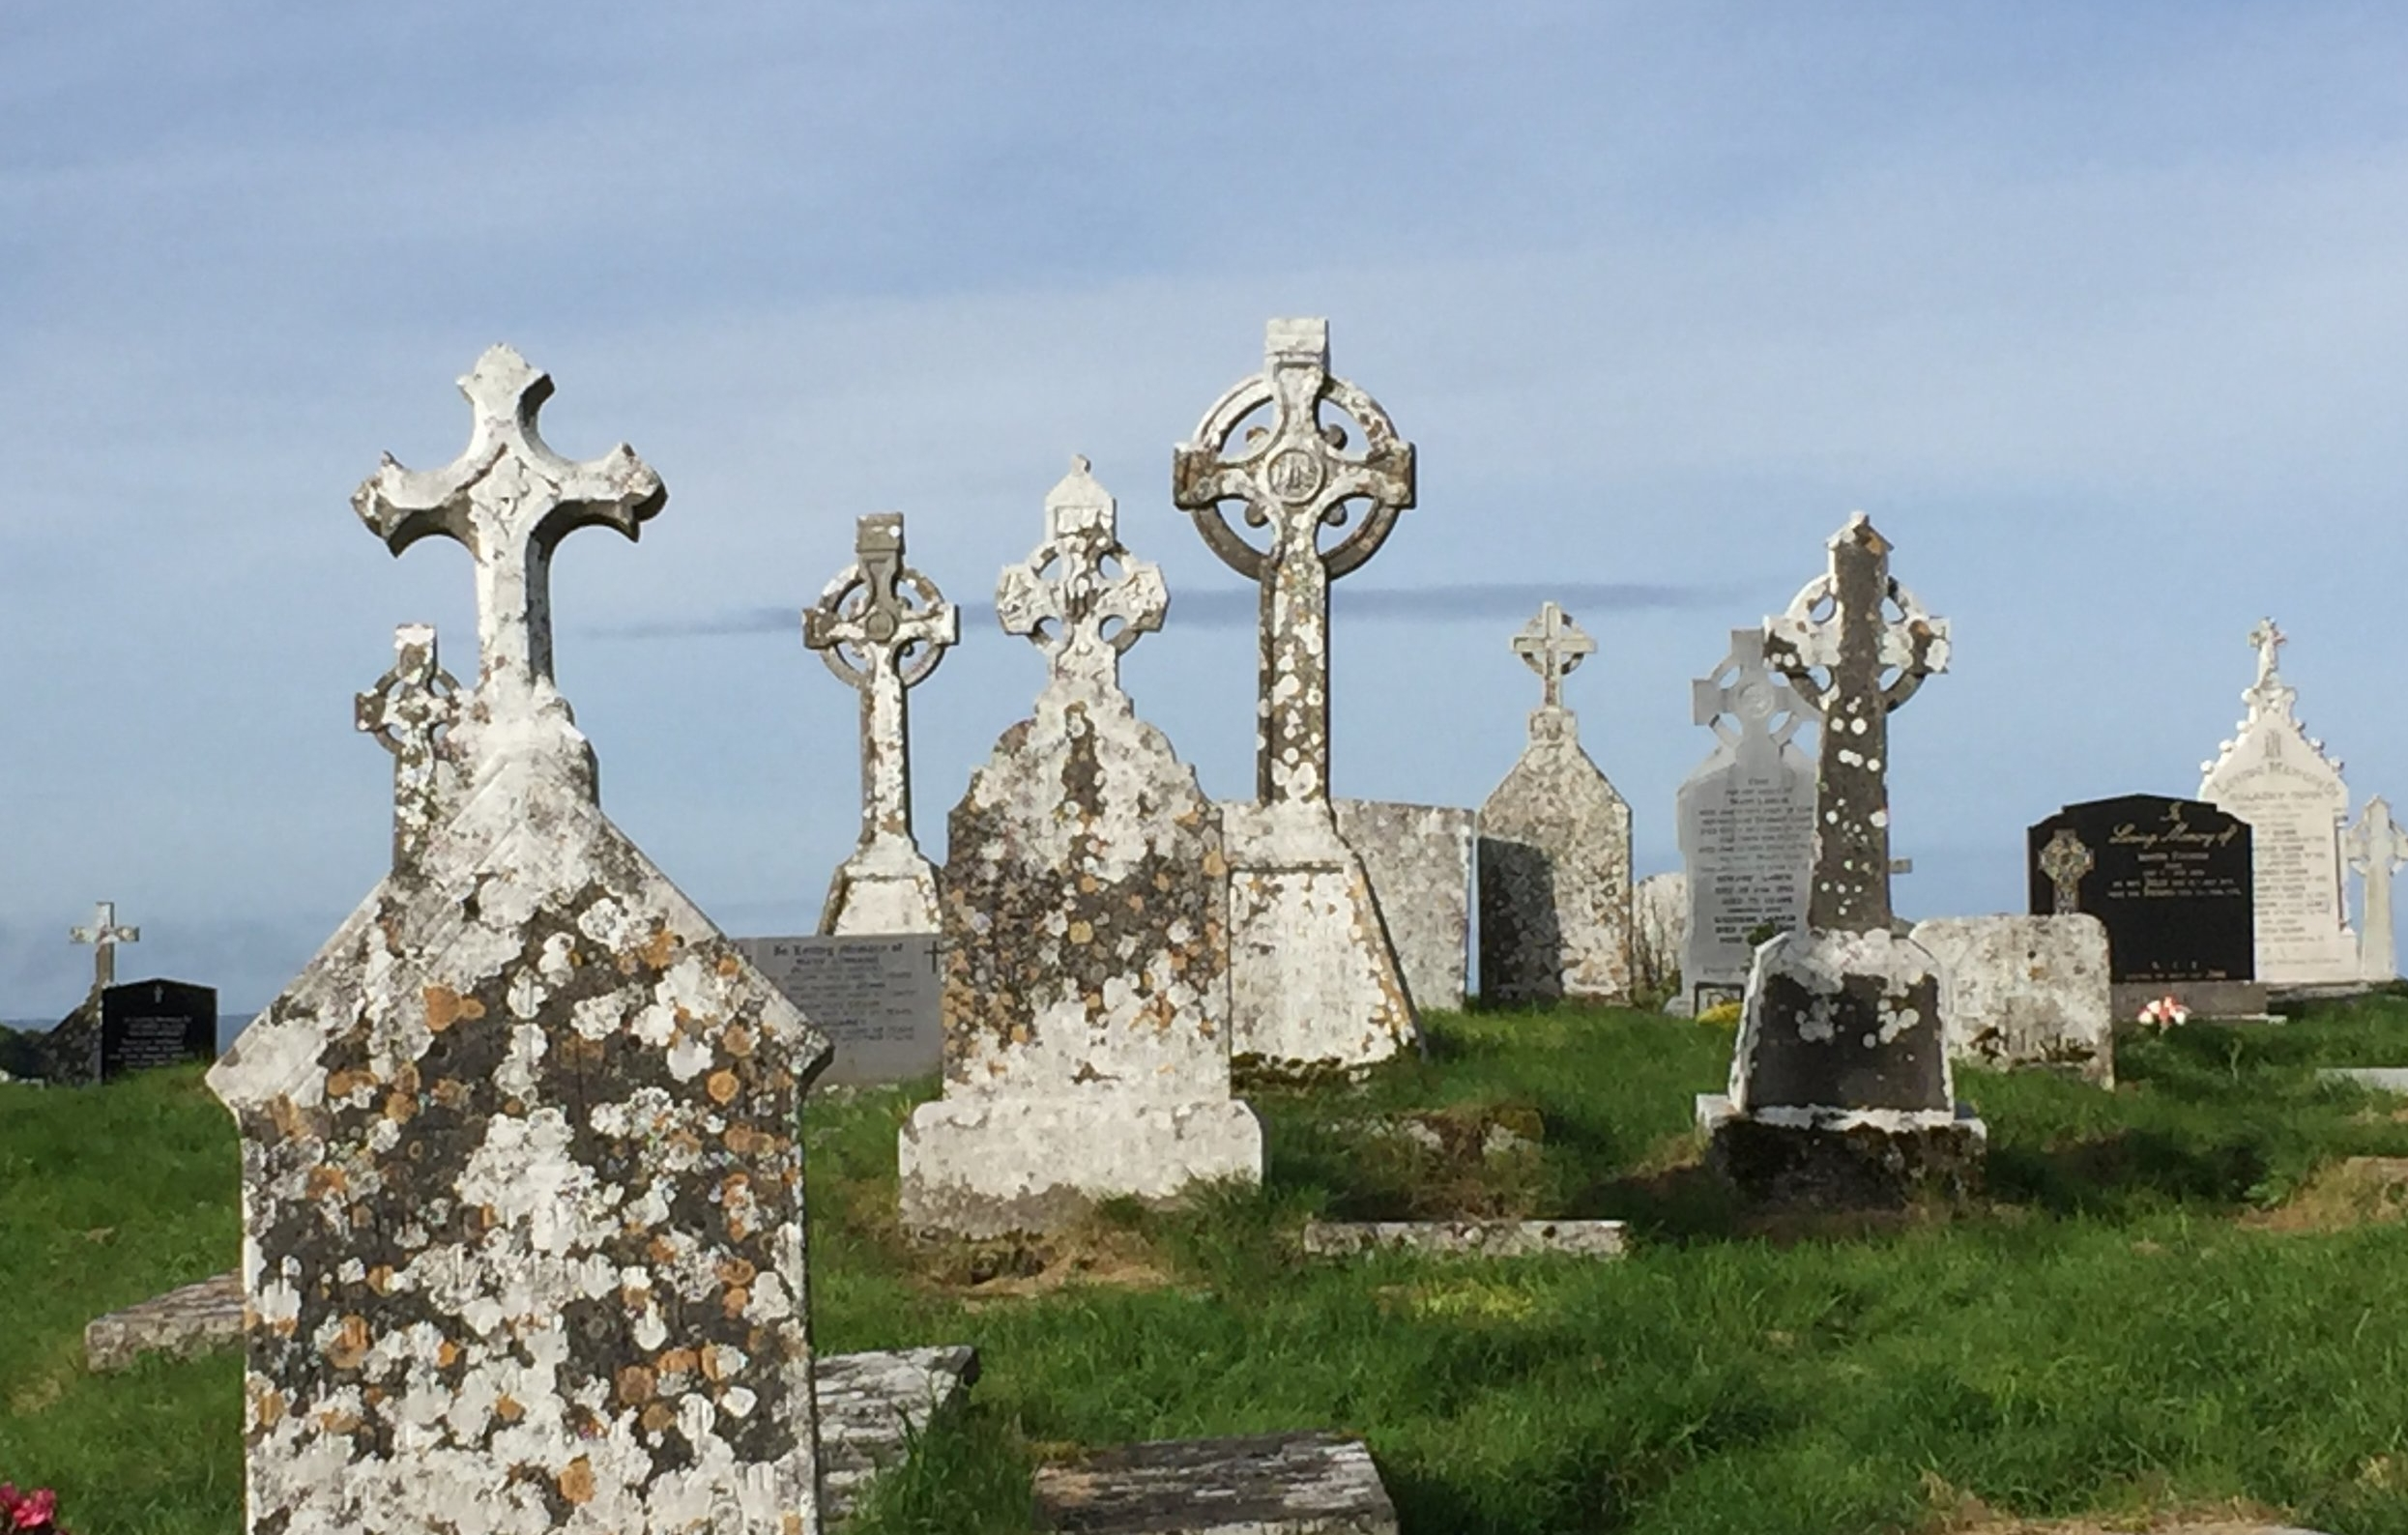 St. Sourney's Cemetery